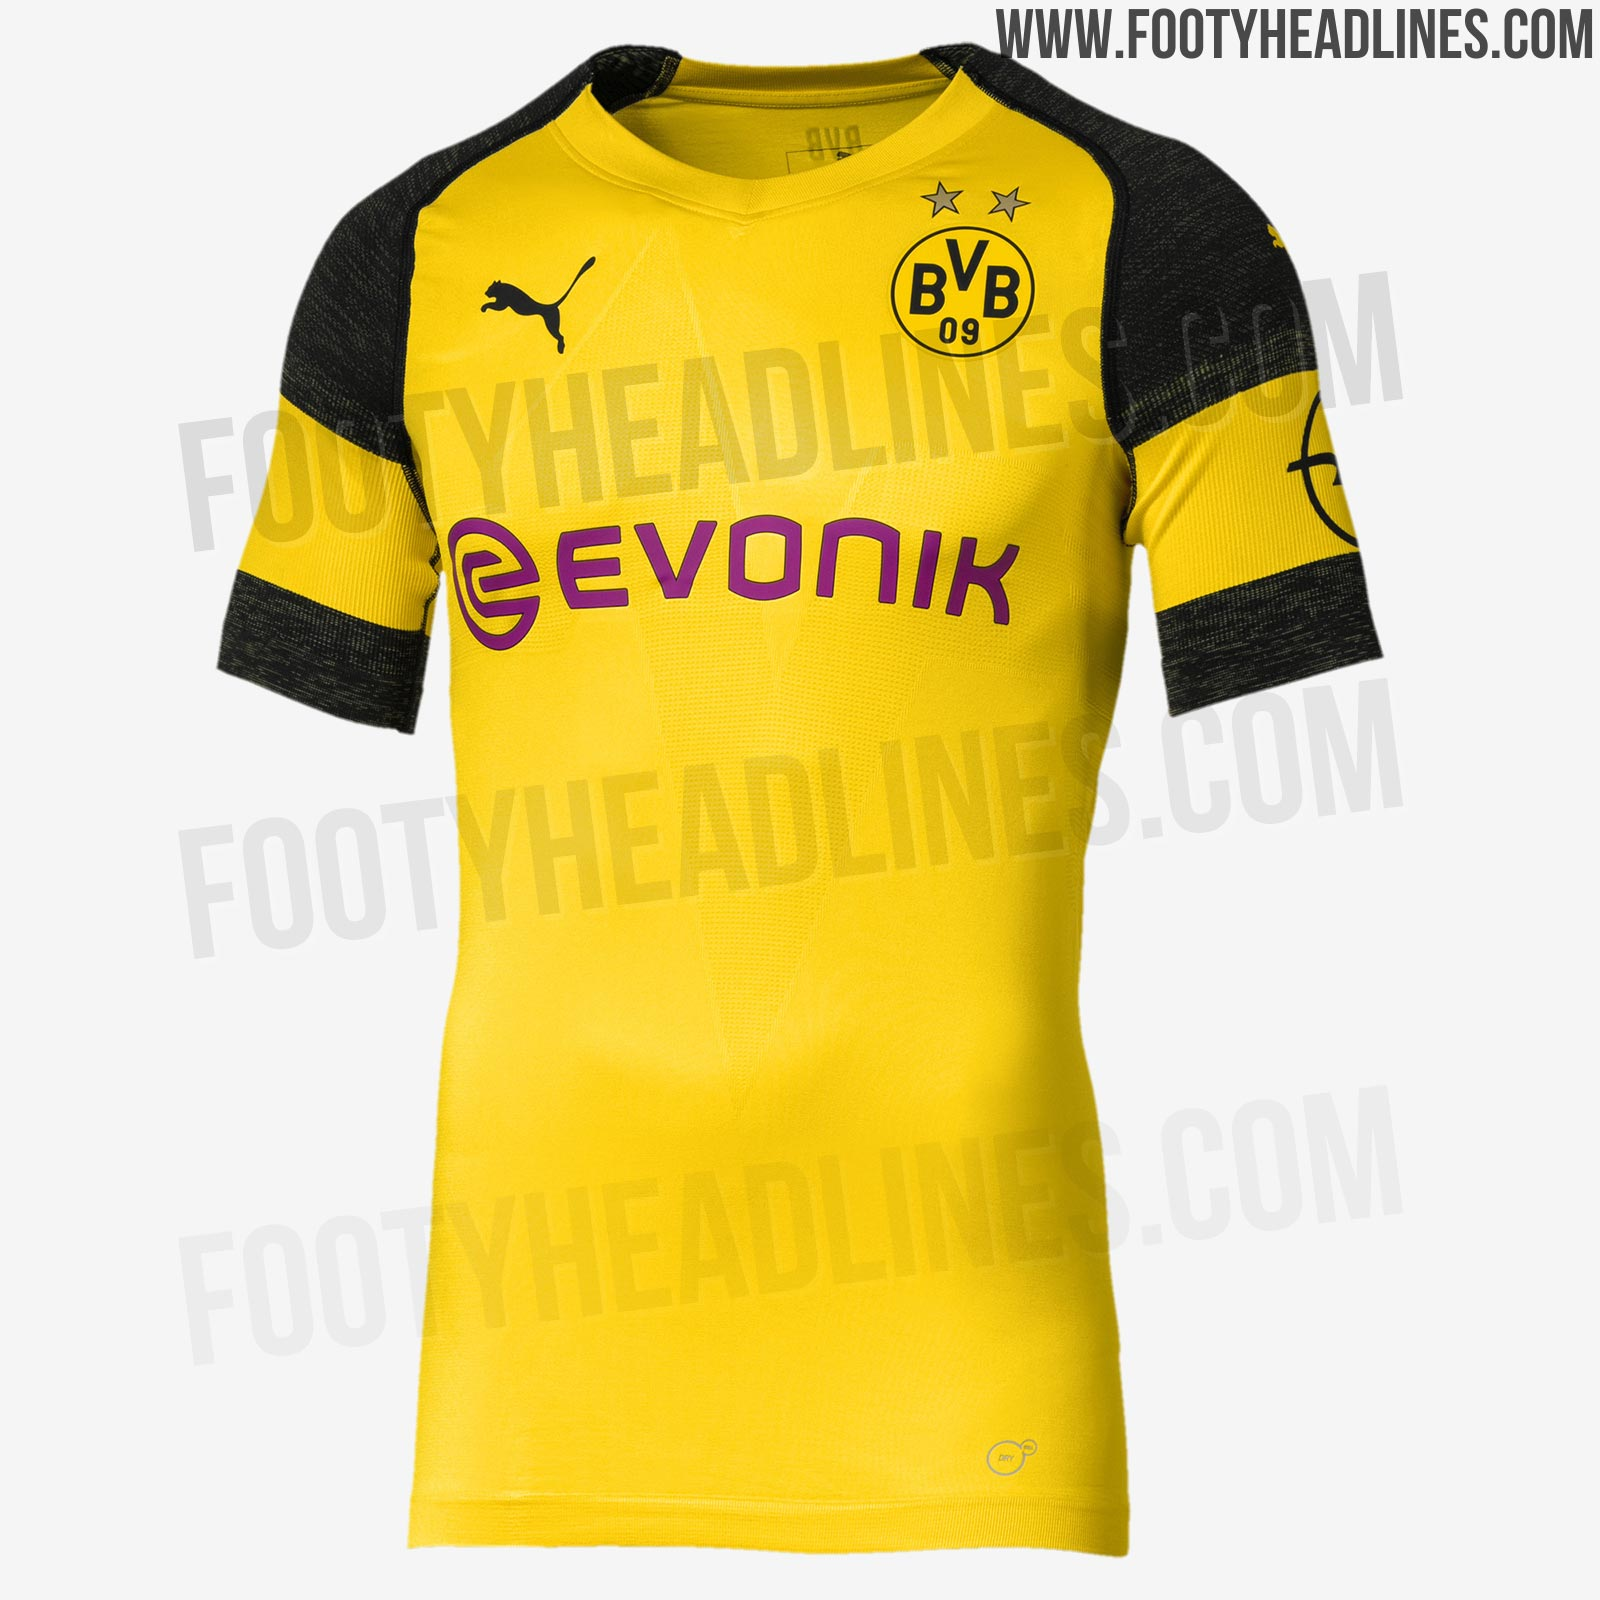 odd puma borussia dortmund 18 19 kit font released footy. Black Bedroom Furniture Sets. Home Design Ideas